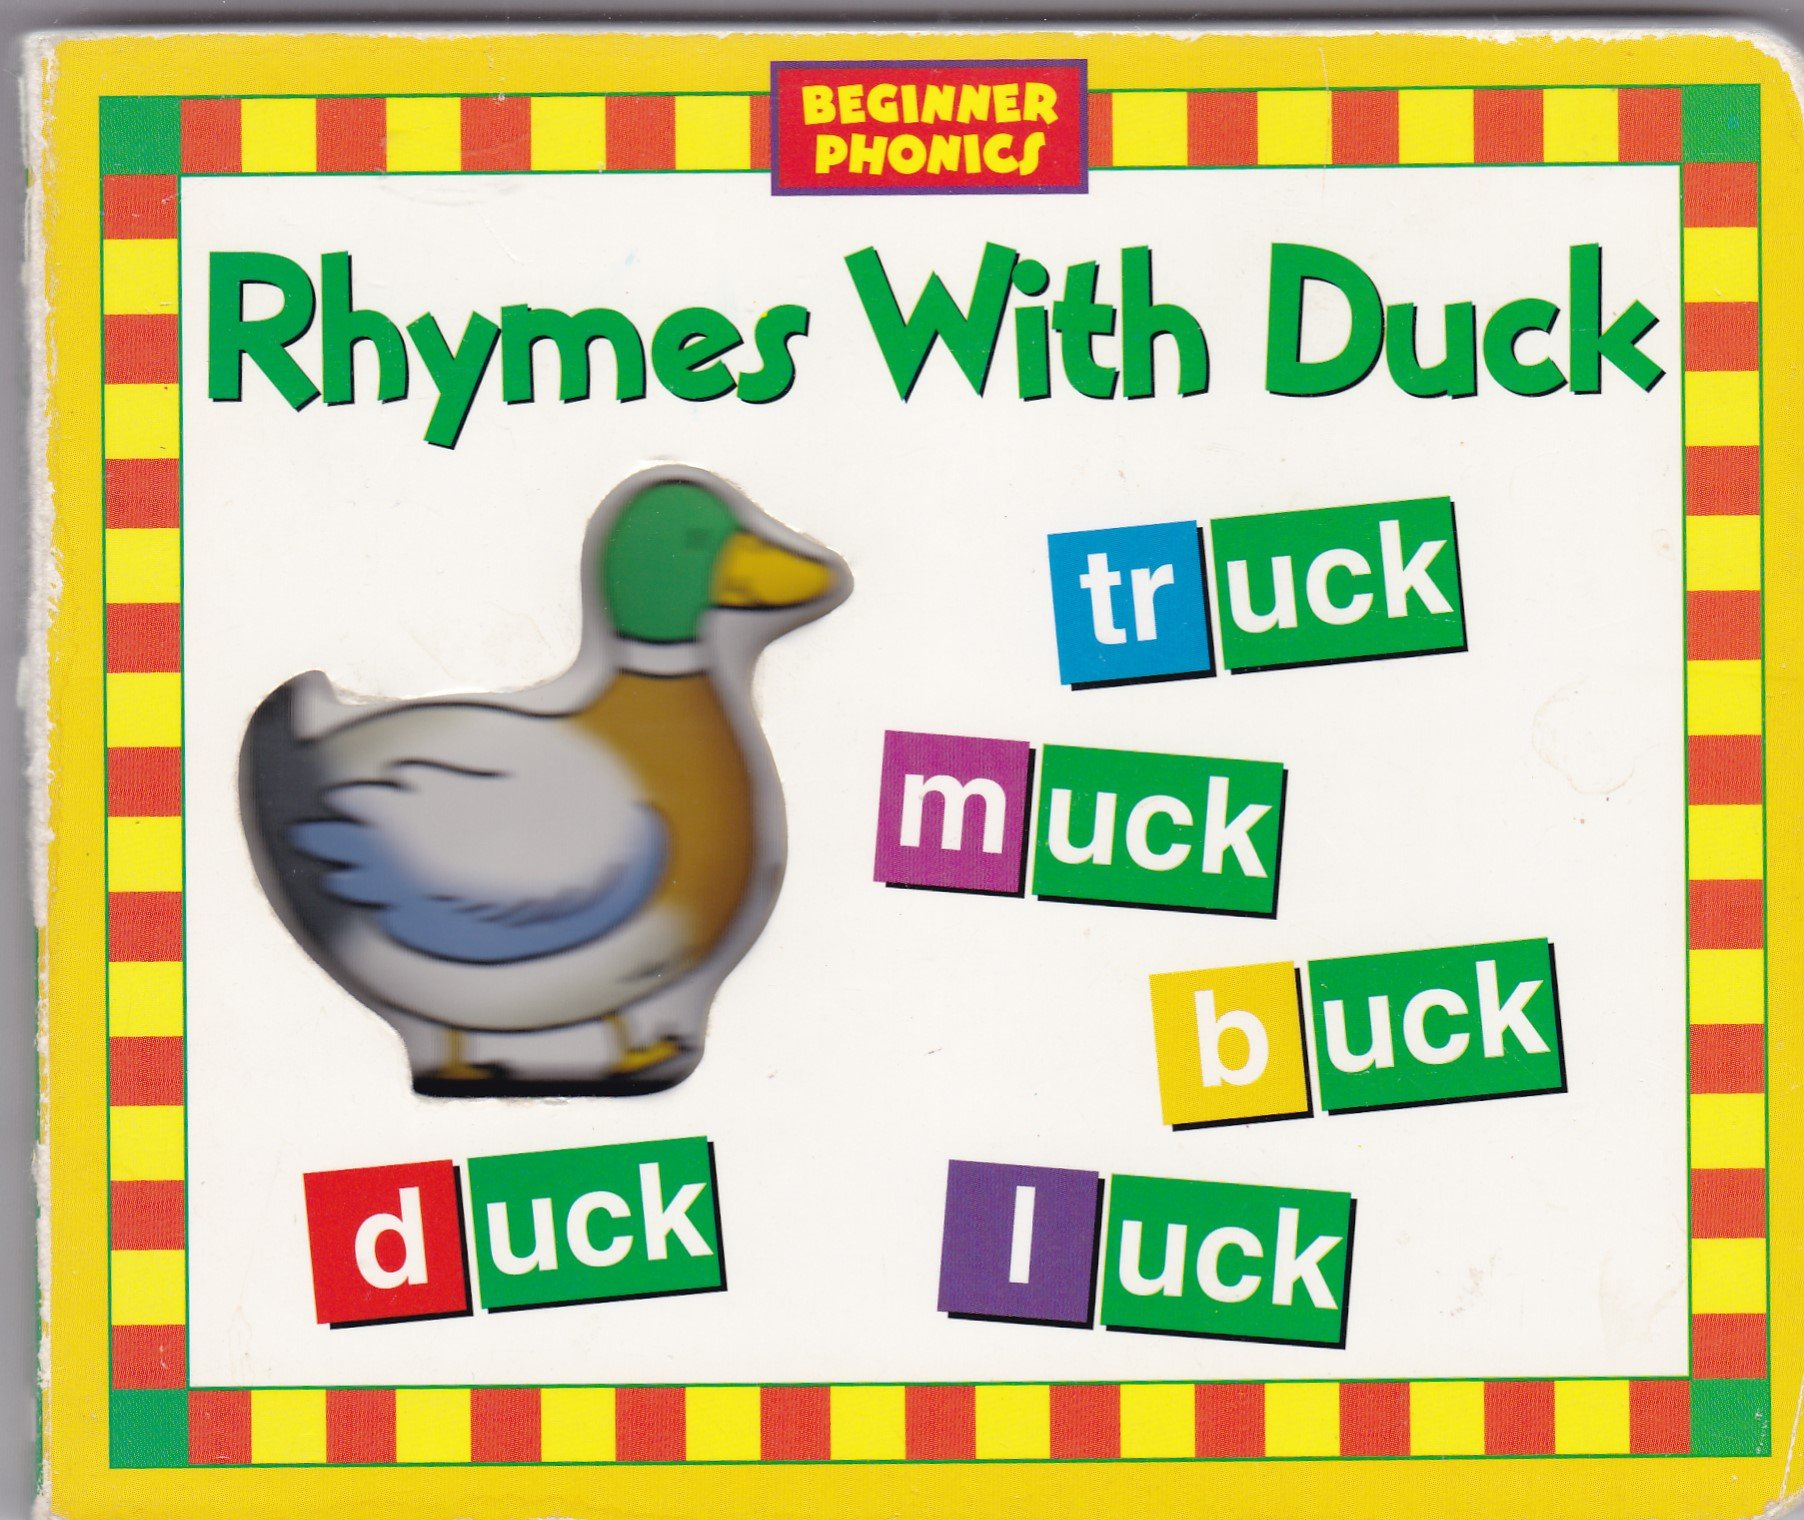 Rhymes with Duck (Beginner Phonics): 9780710511287: Amazon.com: Books